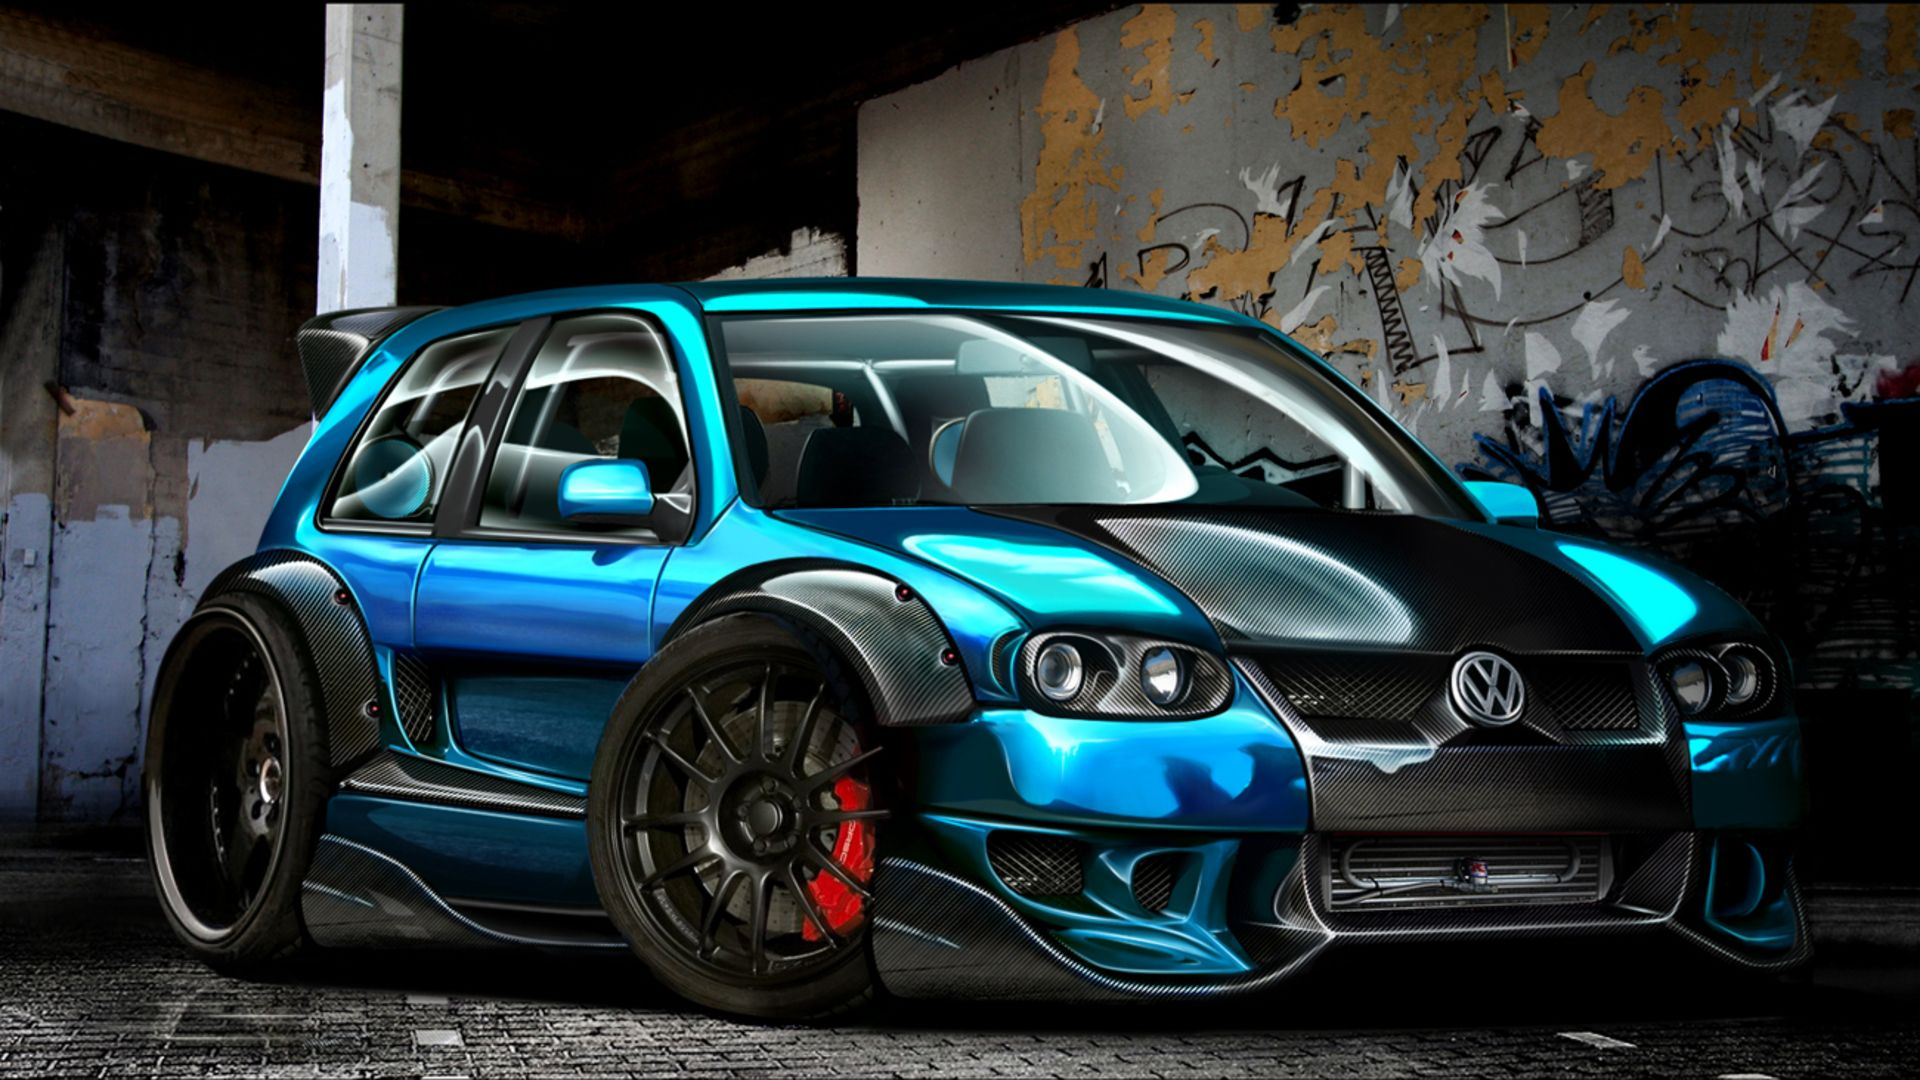 Wallpapers Of Hottest Cars Of The World Original Preview Pic 1076 Cool Car Pictures Car Volkswagen Cool Wallpapers Cars